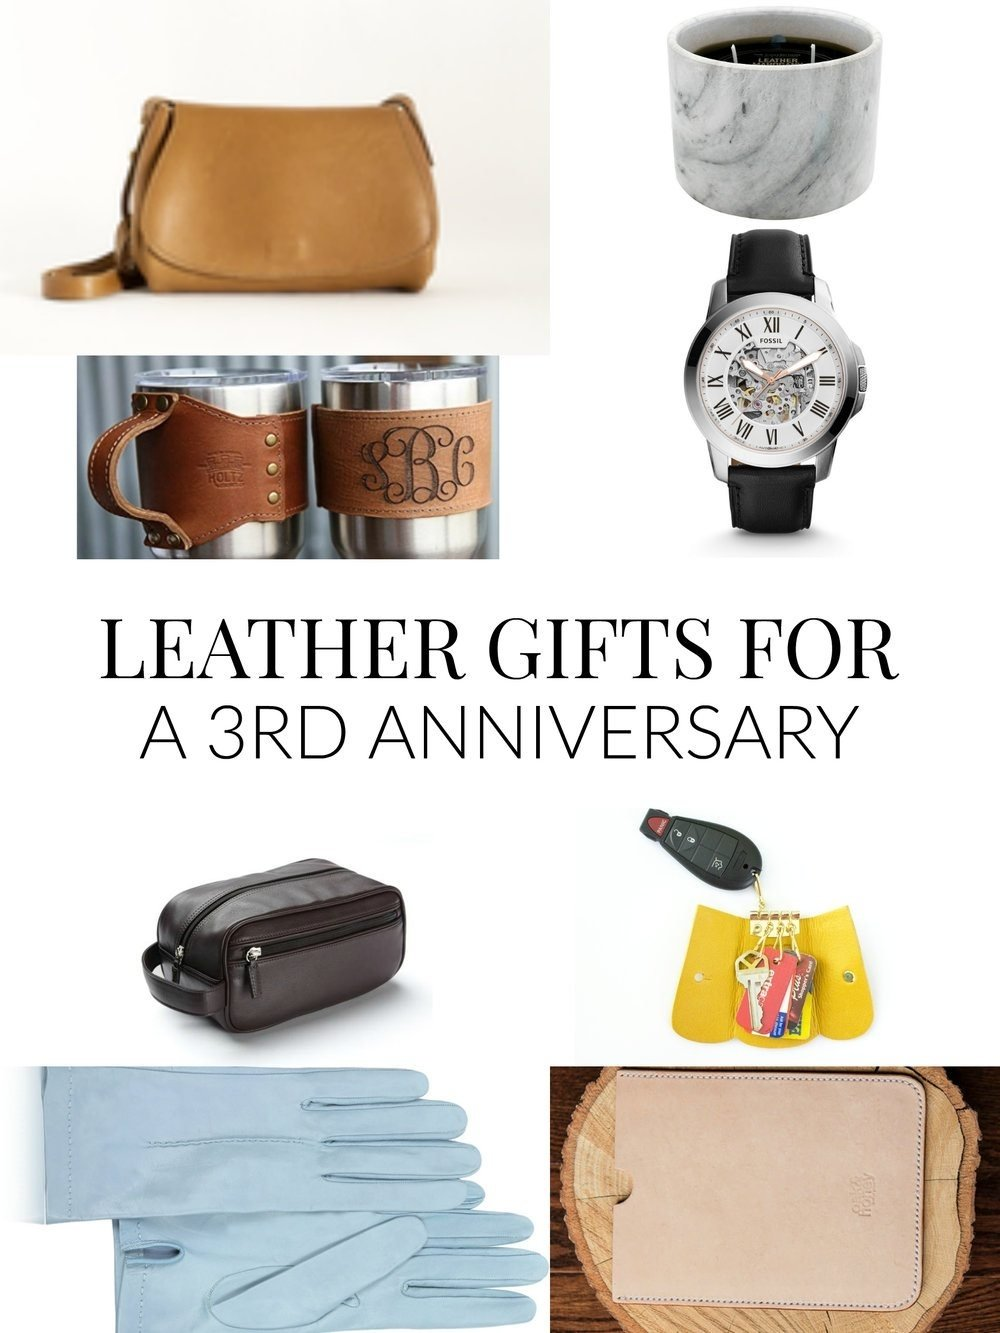 10 Awesome 3rd Anniversary Gift Ideas For Her